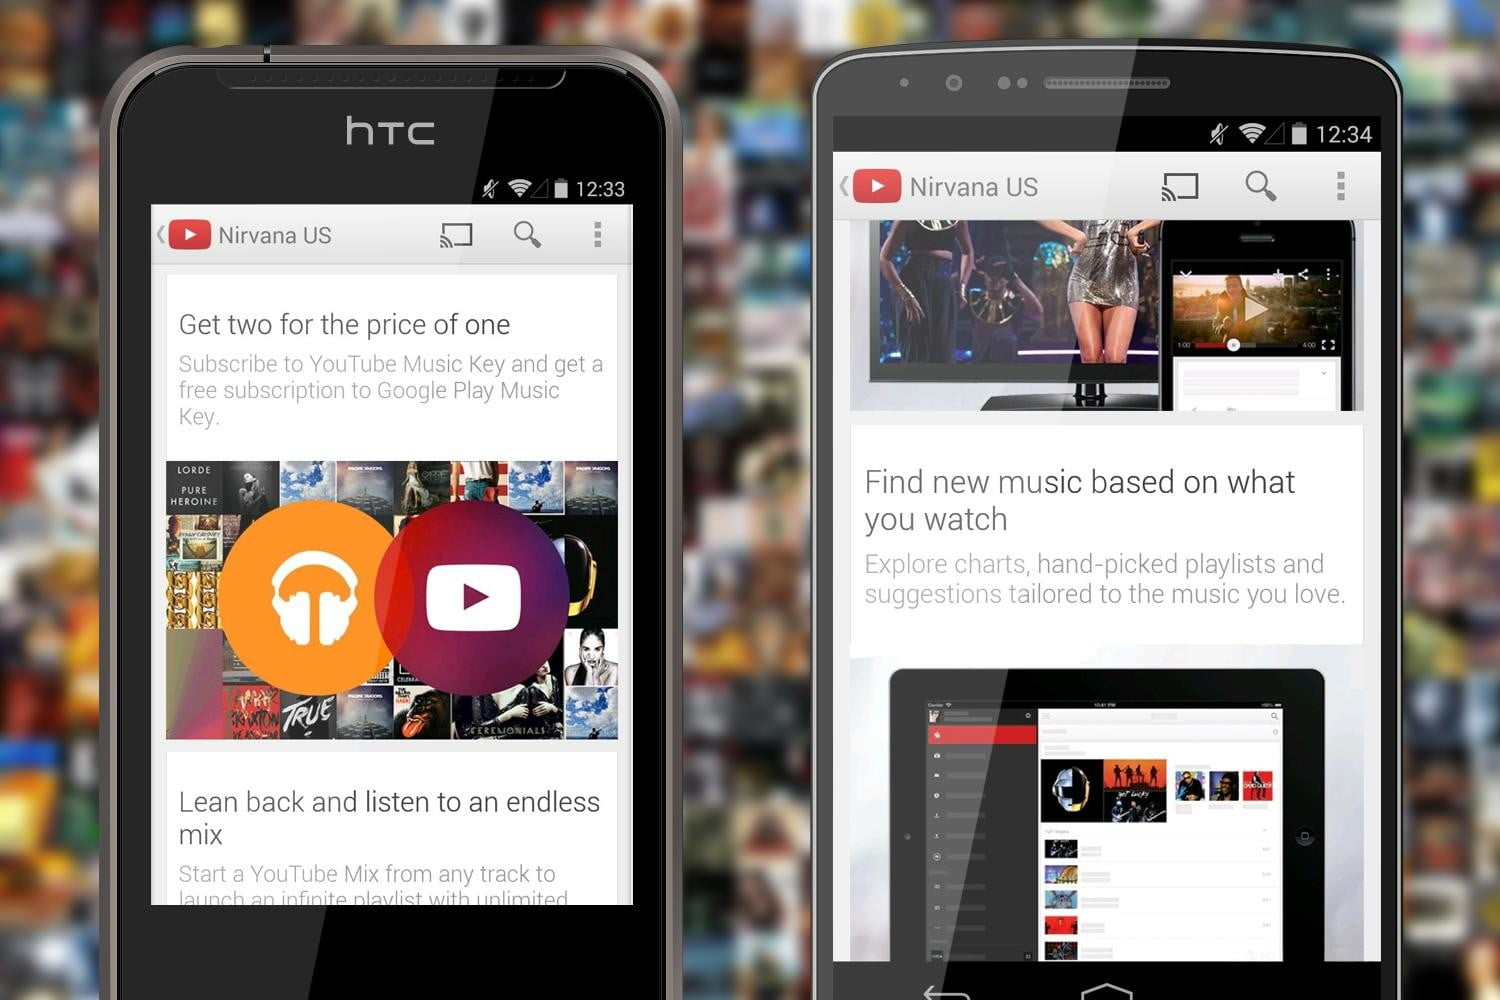 Google's 'YouTube Music Key' service to cost $10 a month